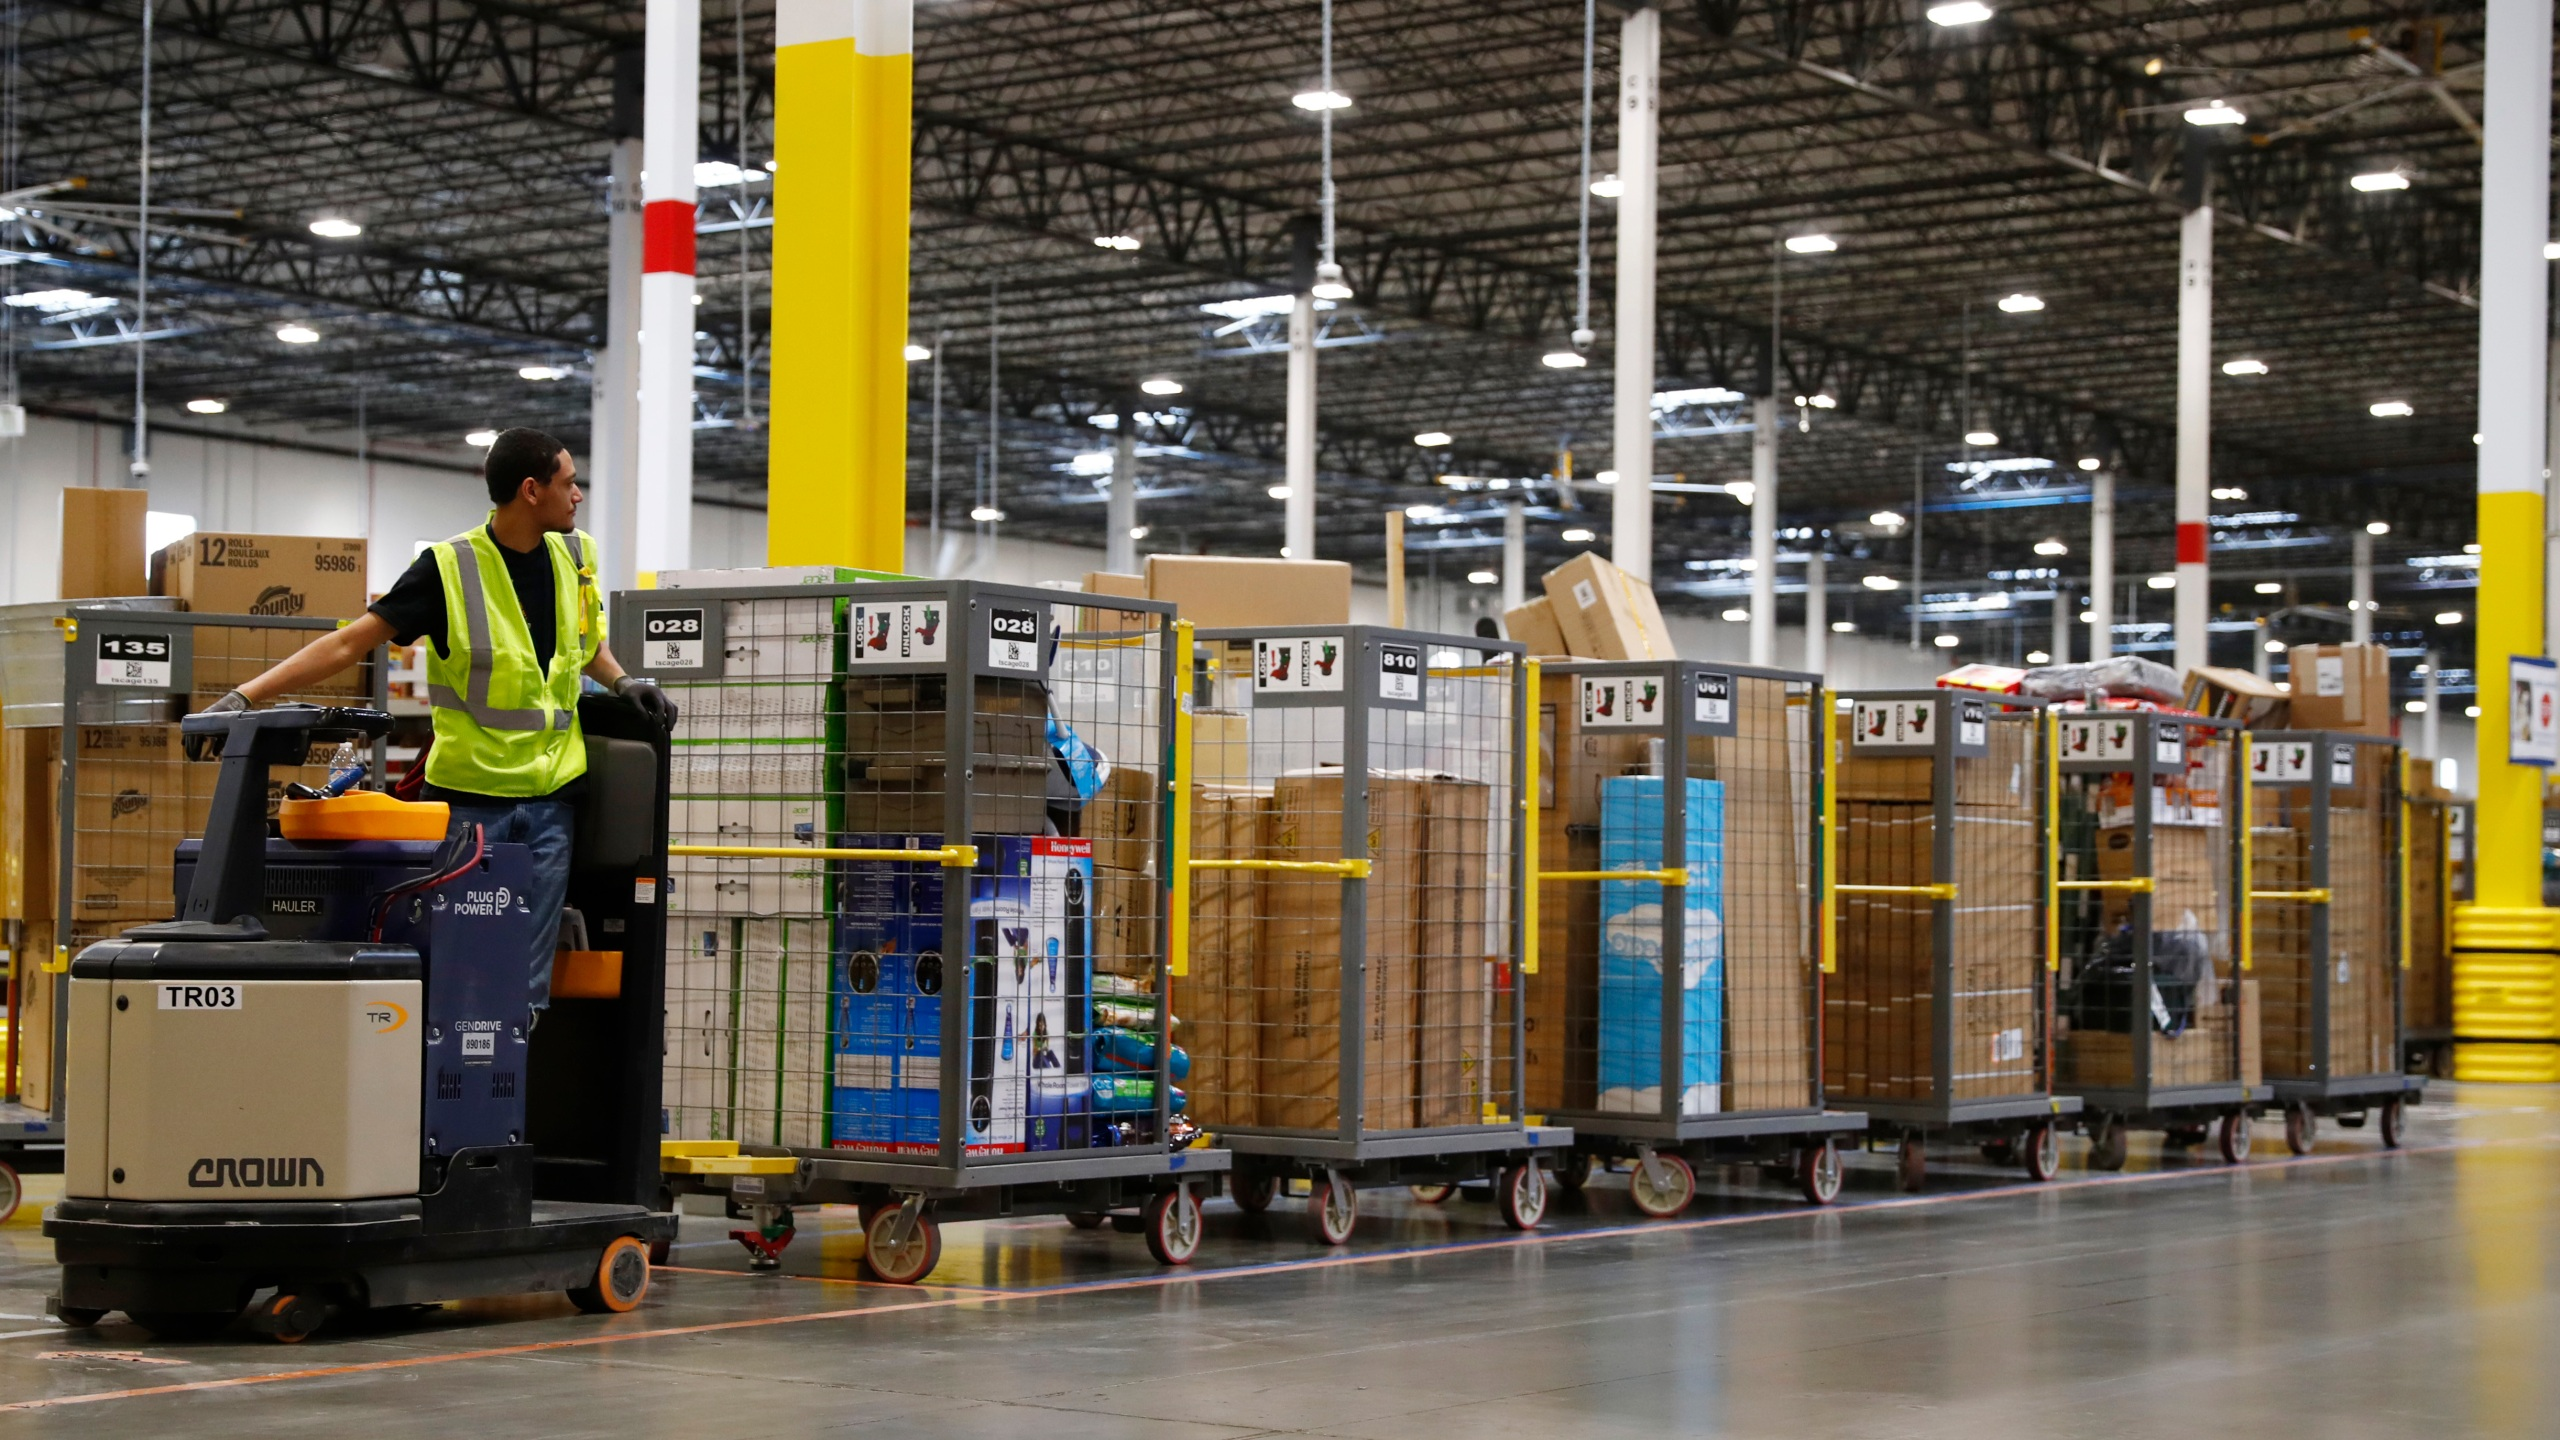 A worker checks the long line of carts that he is about to pull along in the Amazon fulfillment center Thursday, May 3, 2018, in Aurora, Colo. (AP Photo/David Zalubowski)